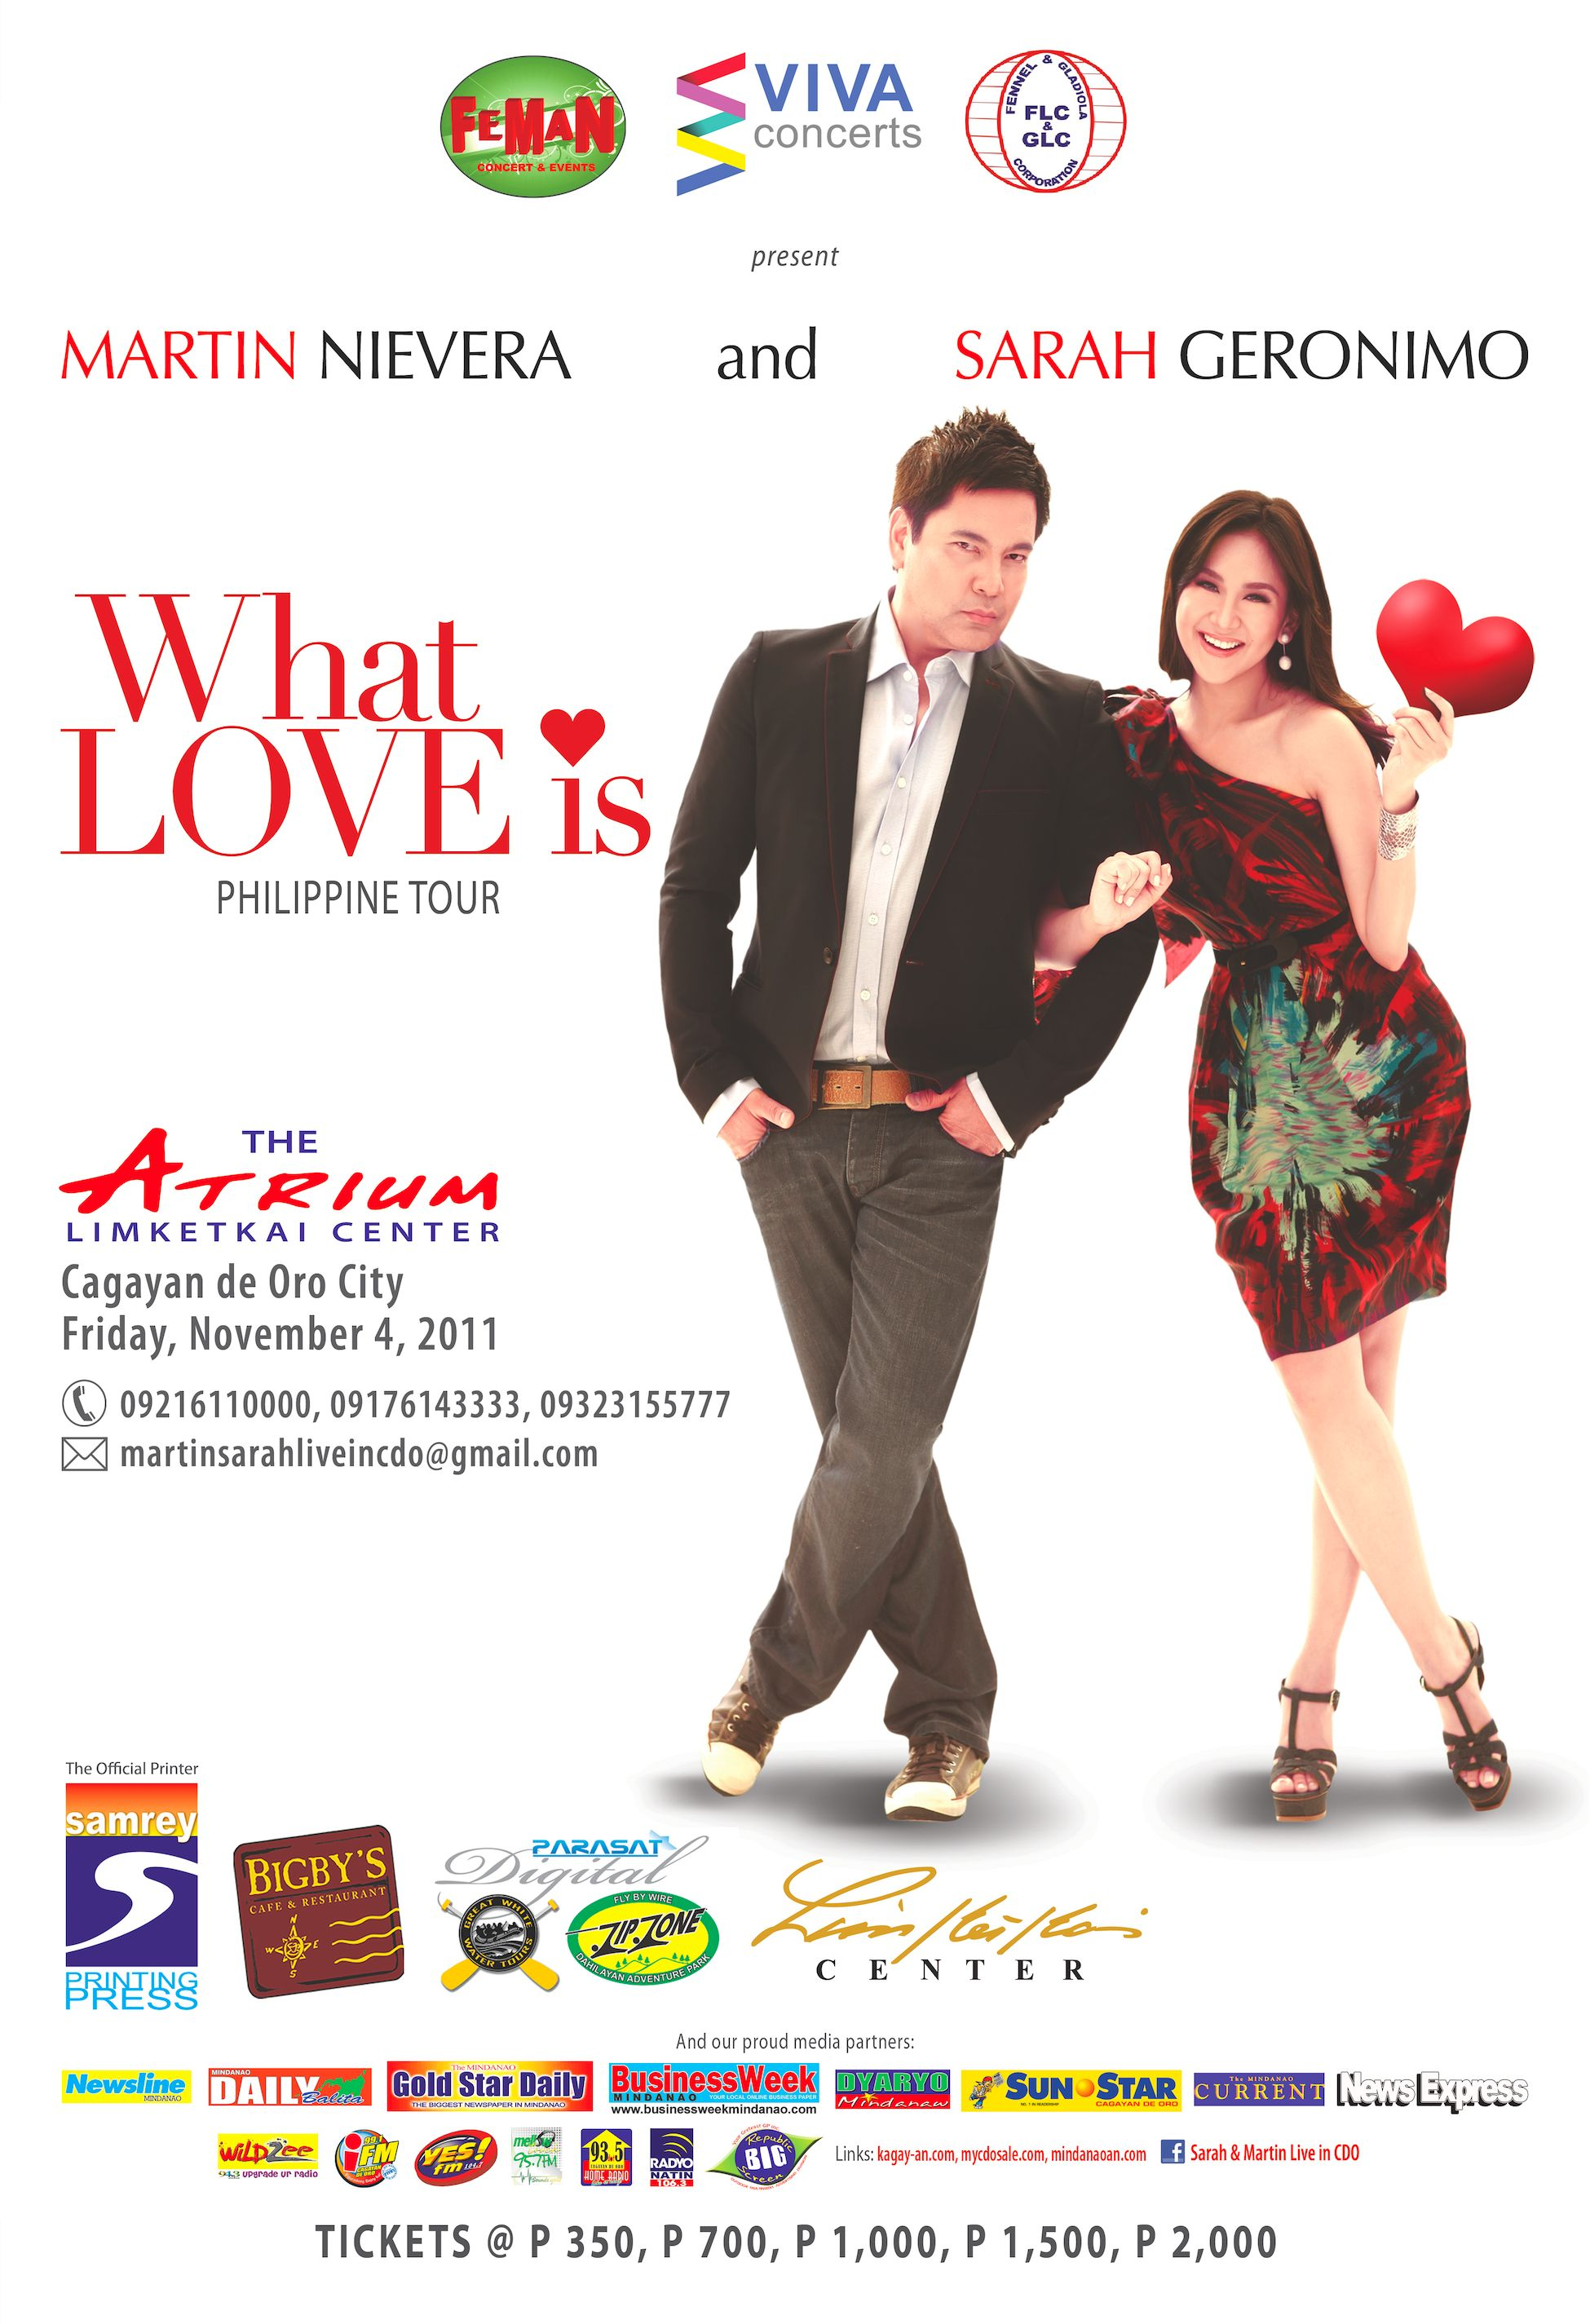 martin nievera and sarah geronimo live in cagayan de oro